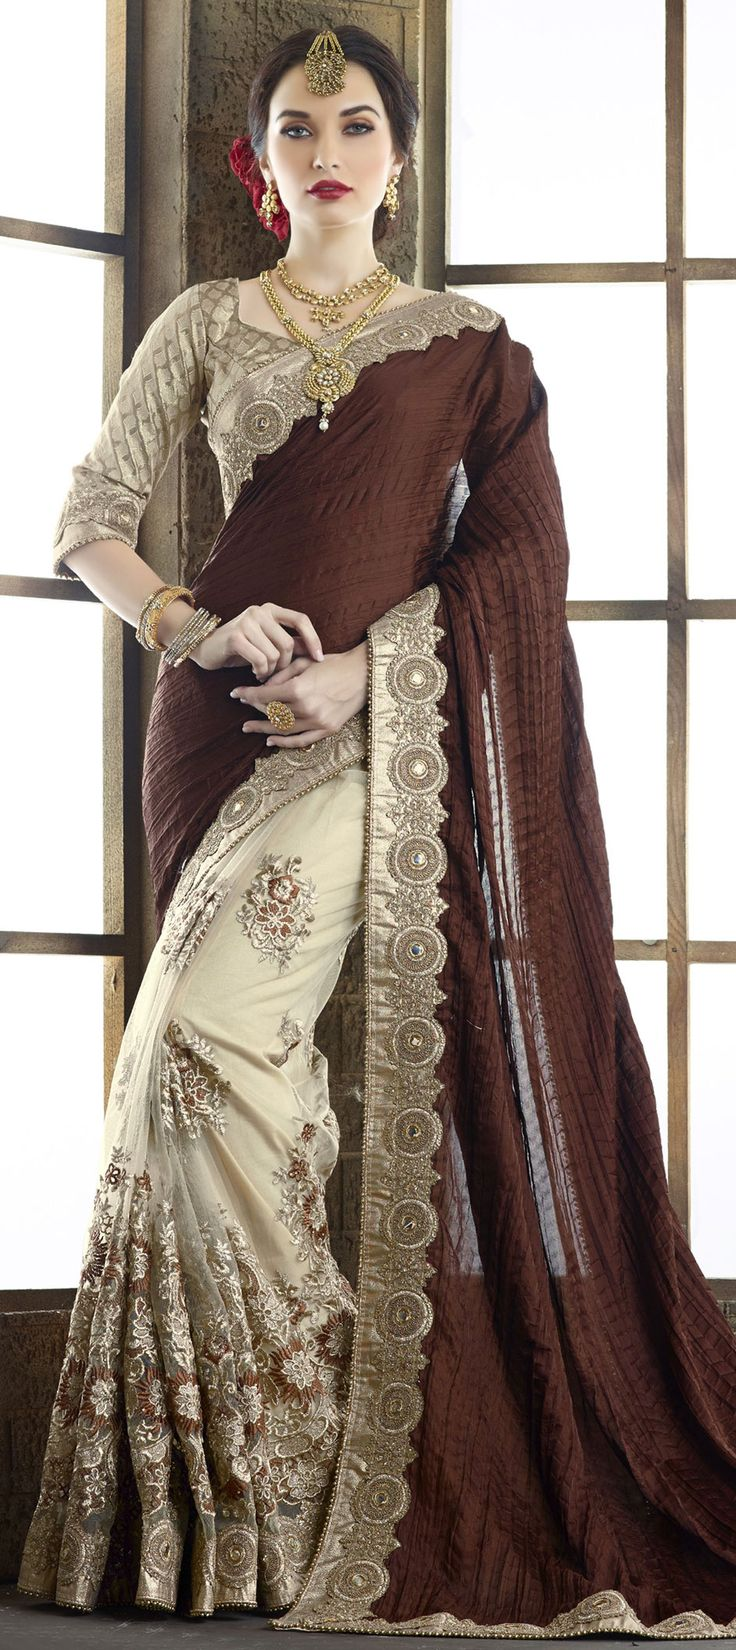 193062: Beige and Brown color family Embroidered Sarees, Party Wear Sarees, Silk Sarees with matching unstitched blouse.